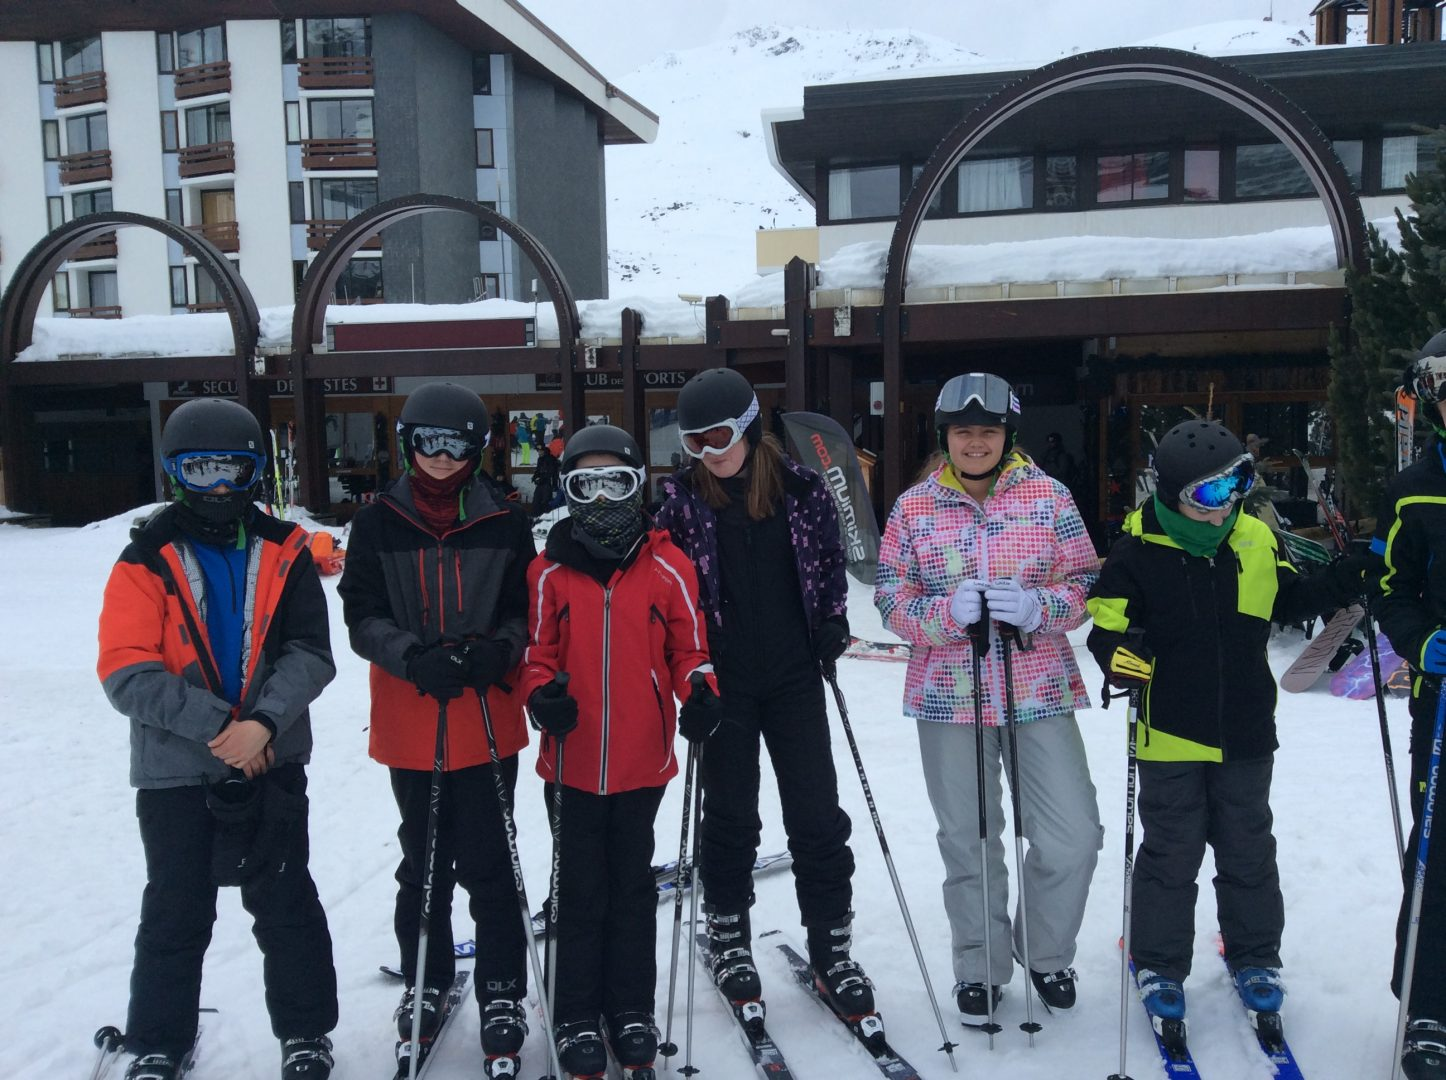 Les Menuires Senior School Ski Trip Blog - Day 2